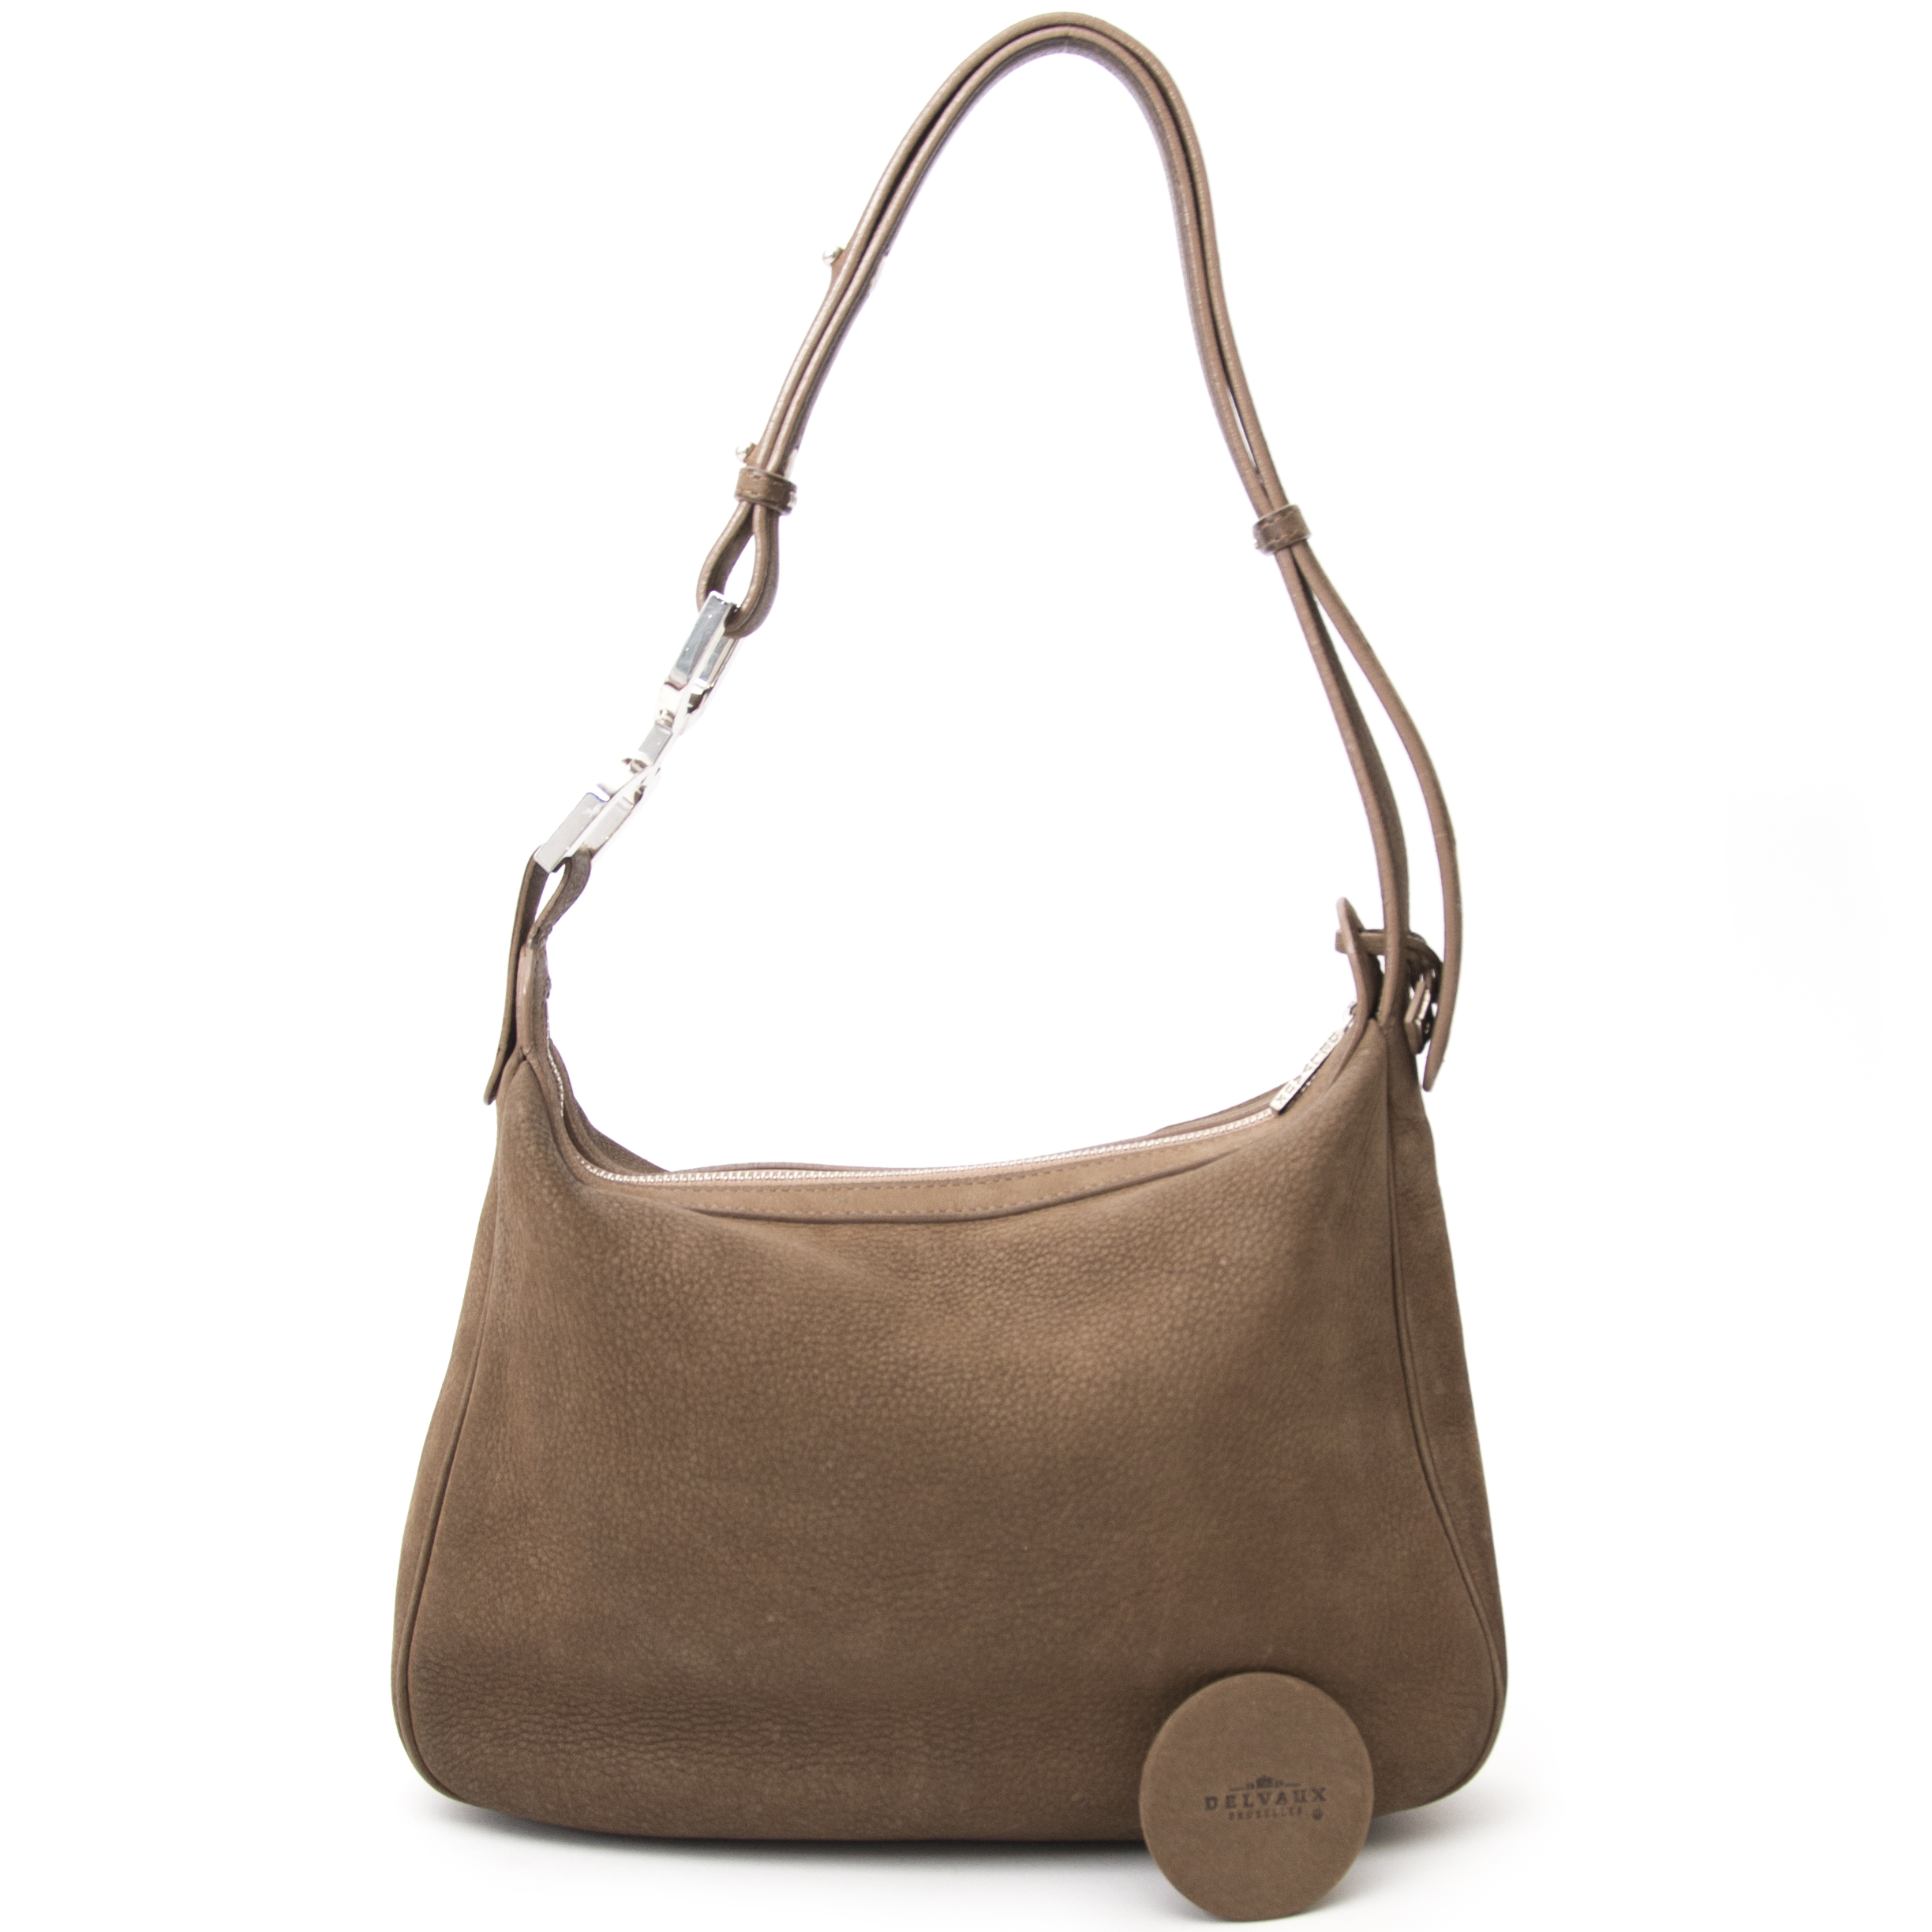 Are you looking for an authentic Delvaux Taupe Brown Nubbuck Shoulder Bag ?